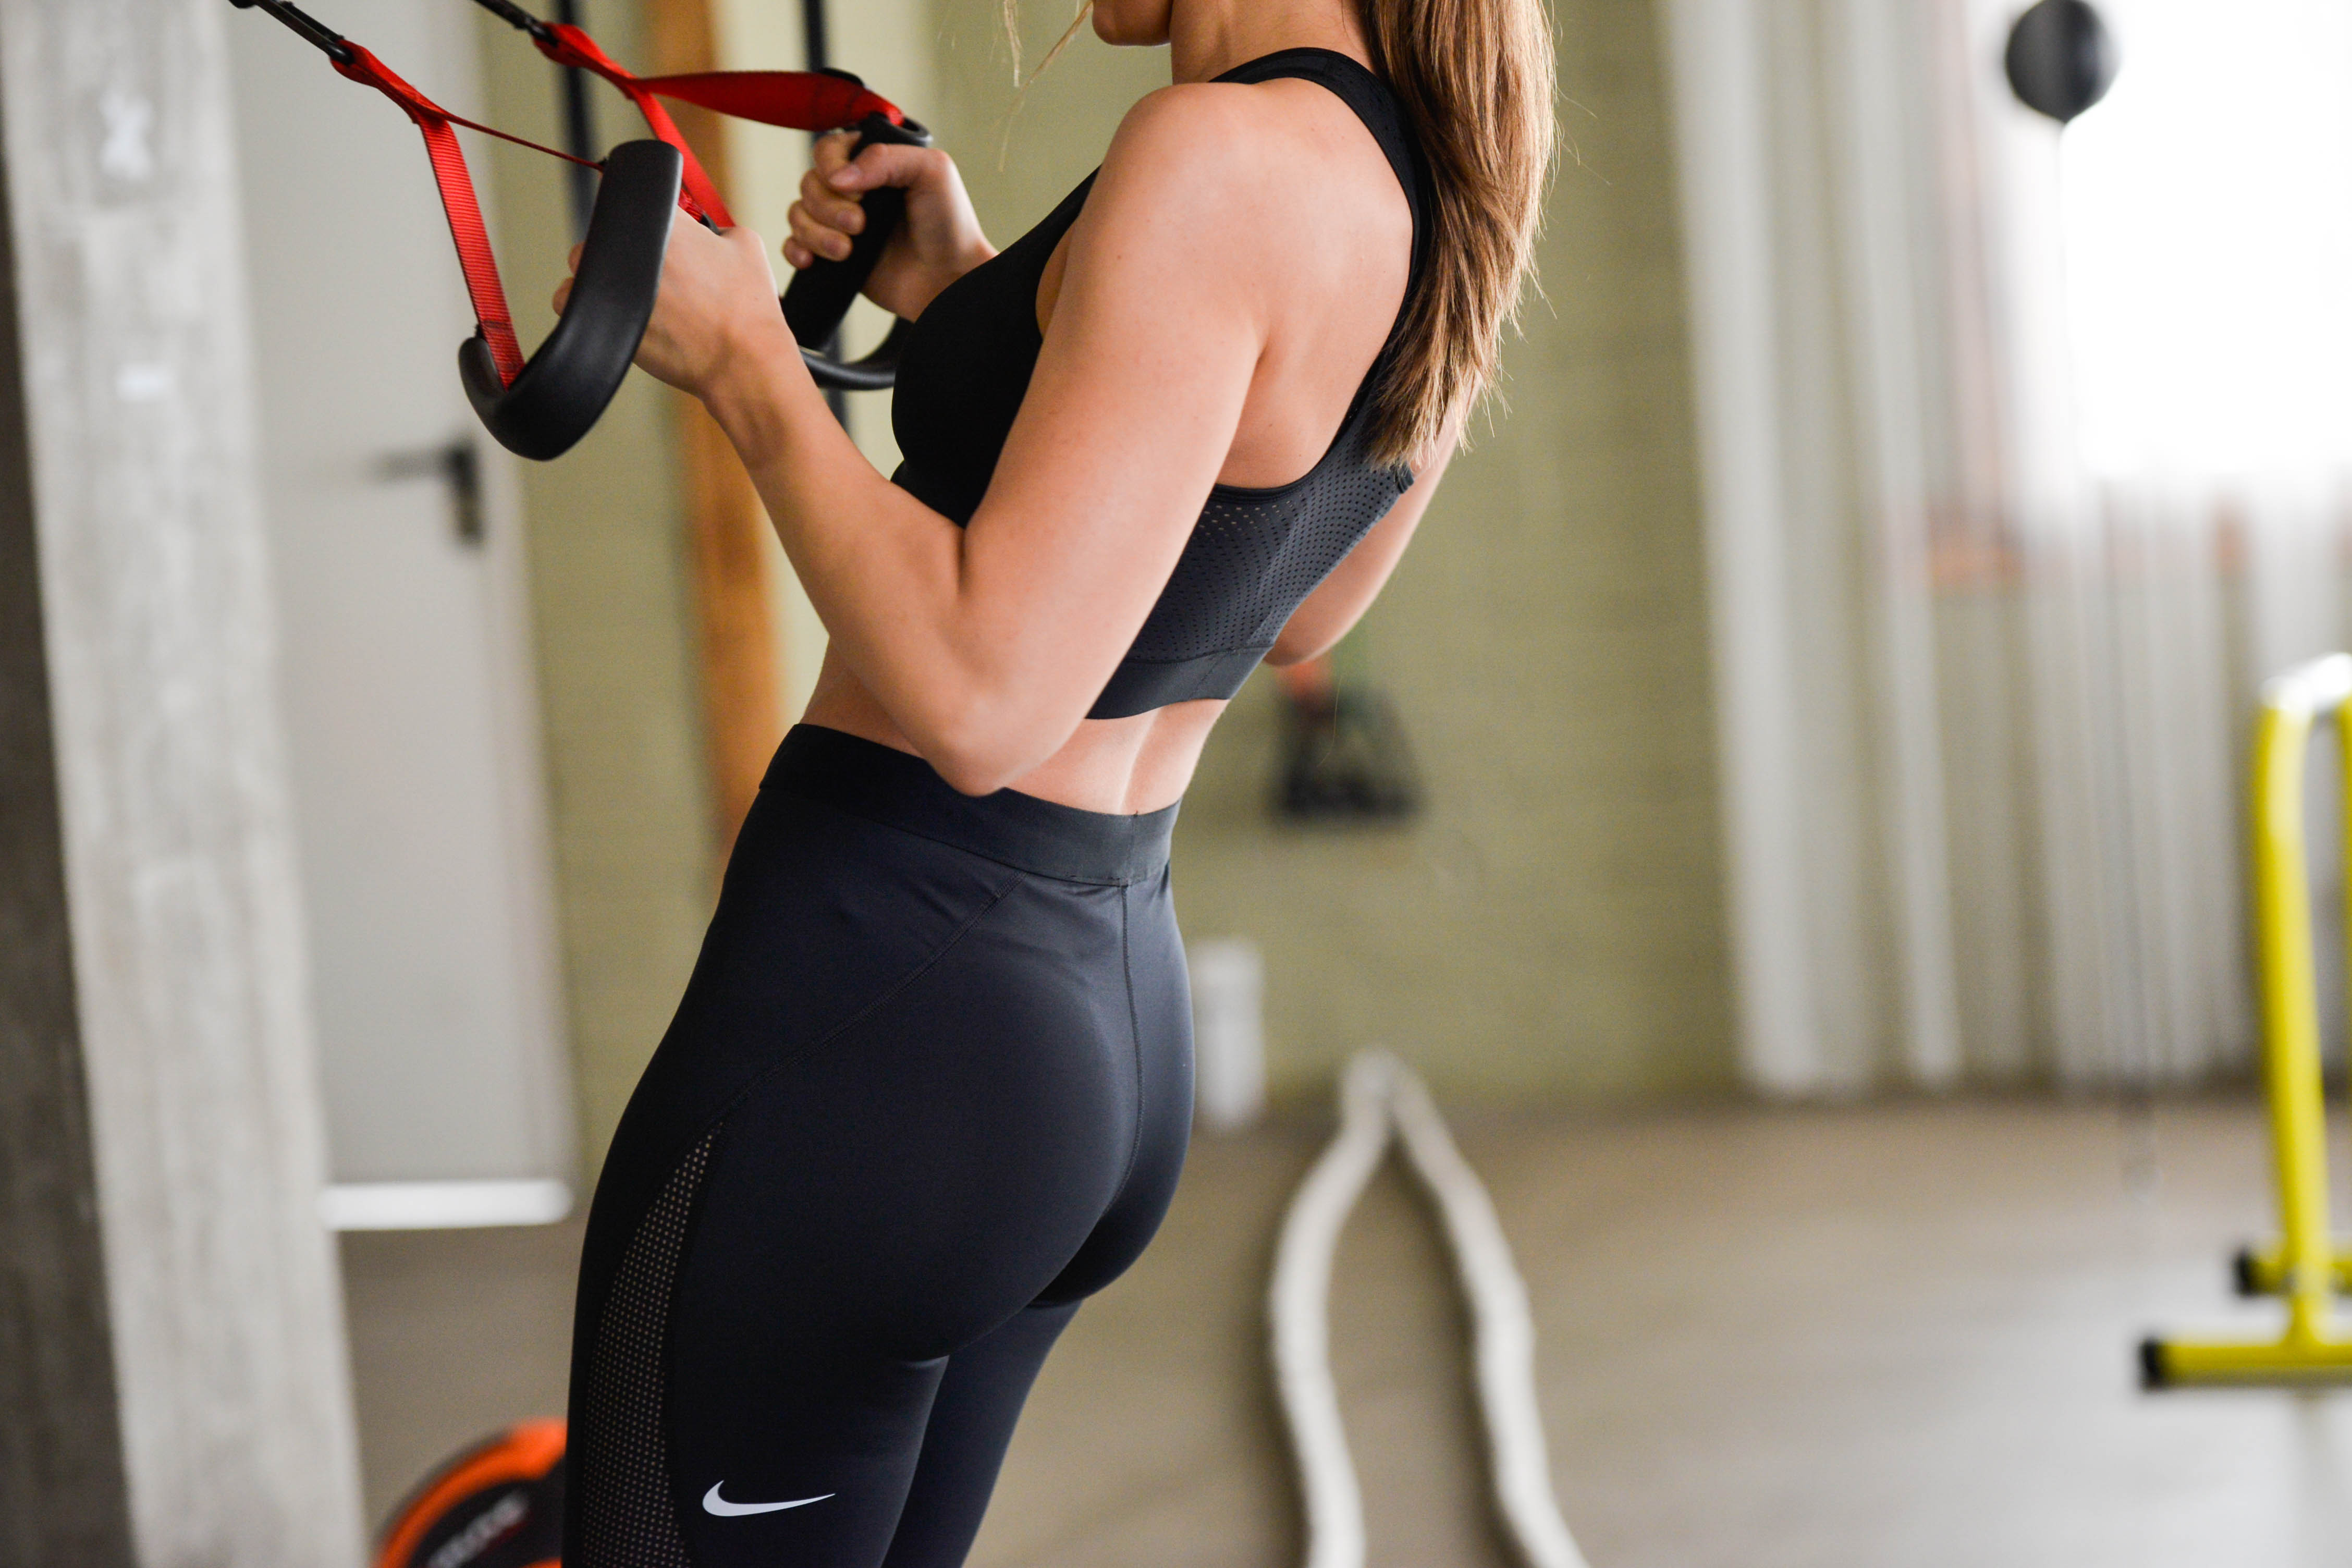 Training routine with Nike